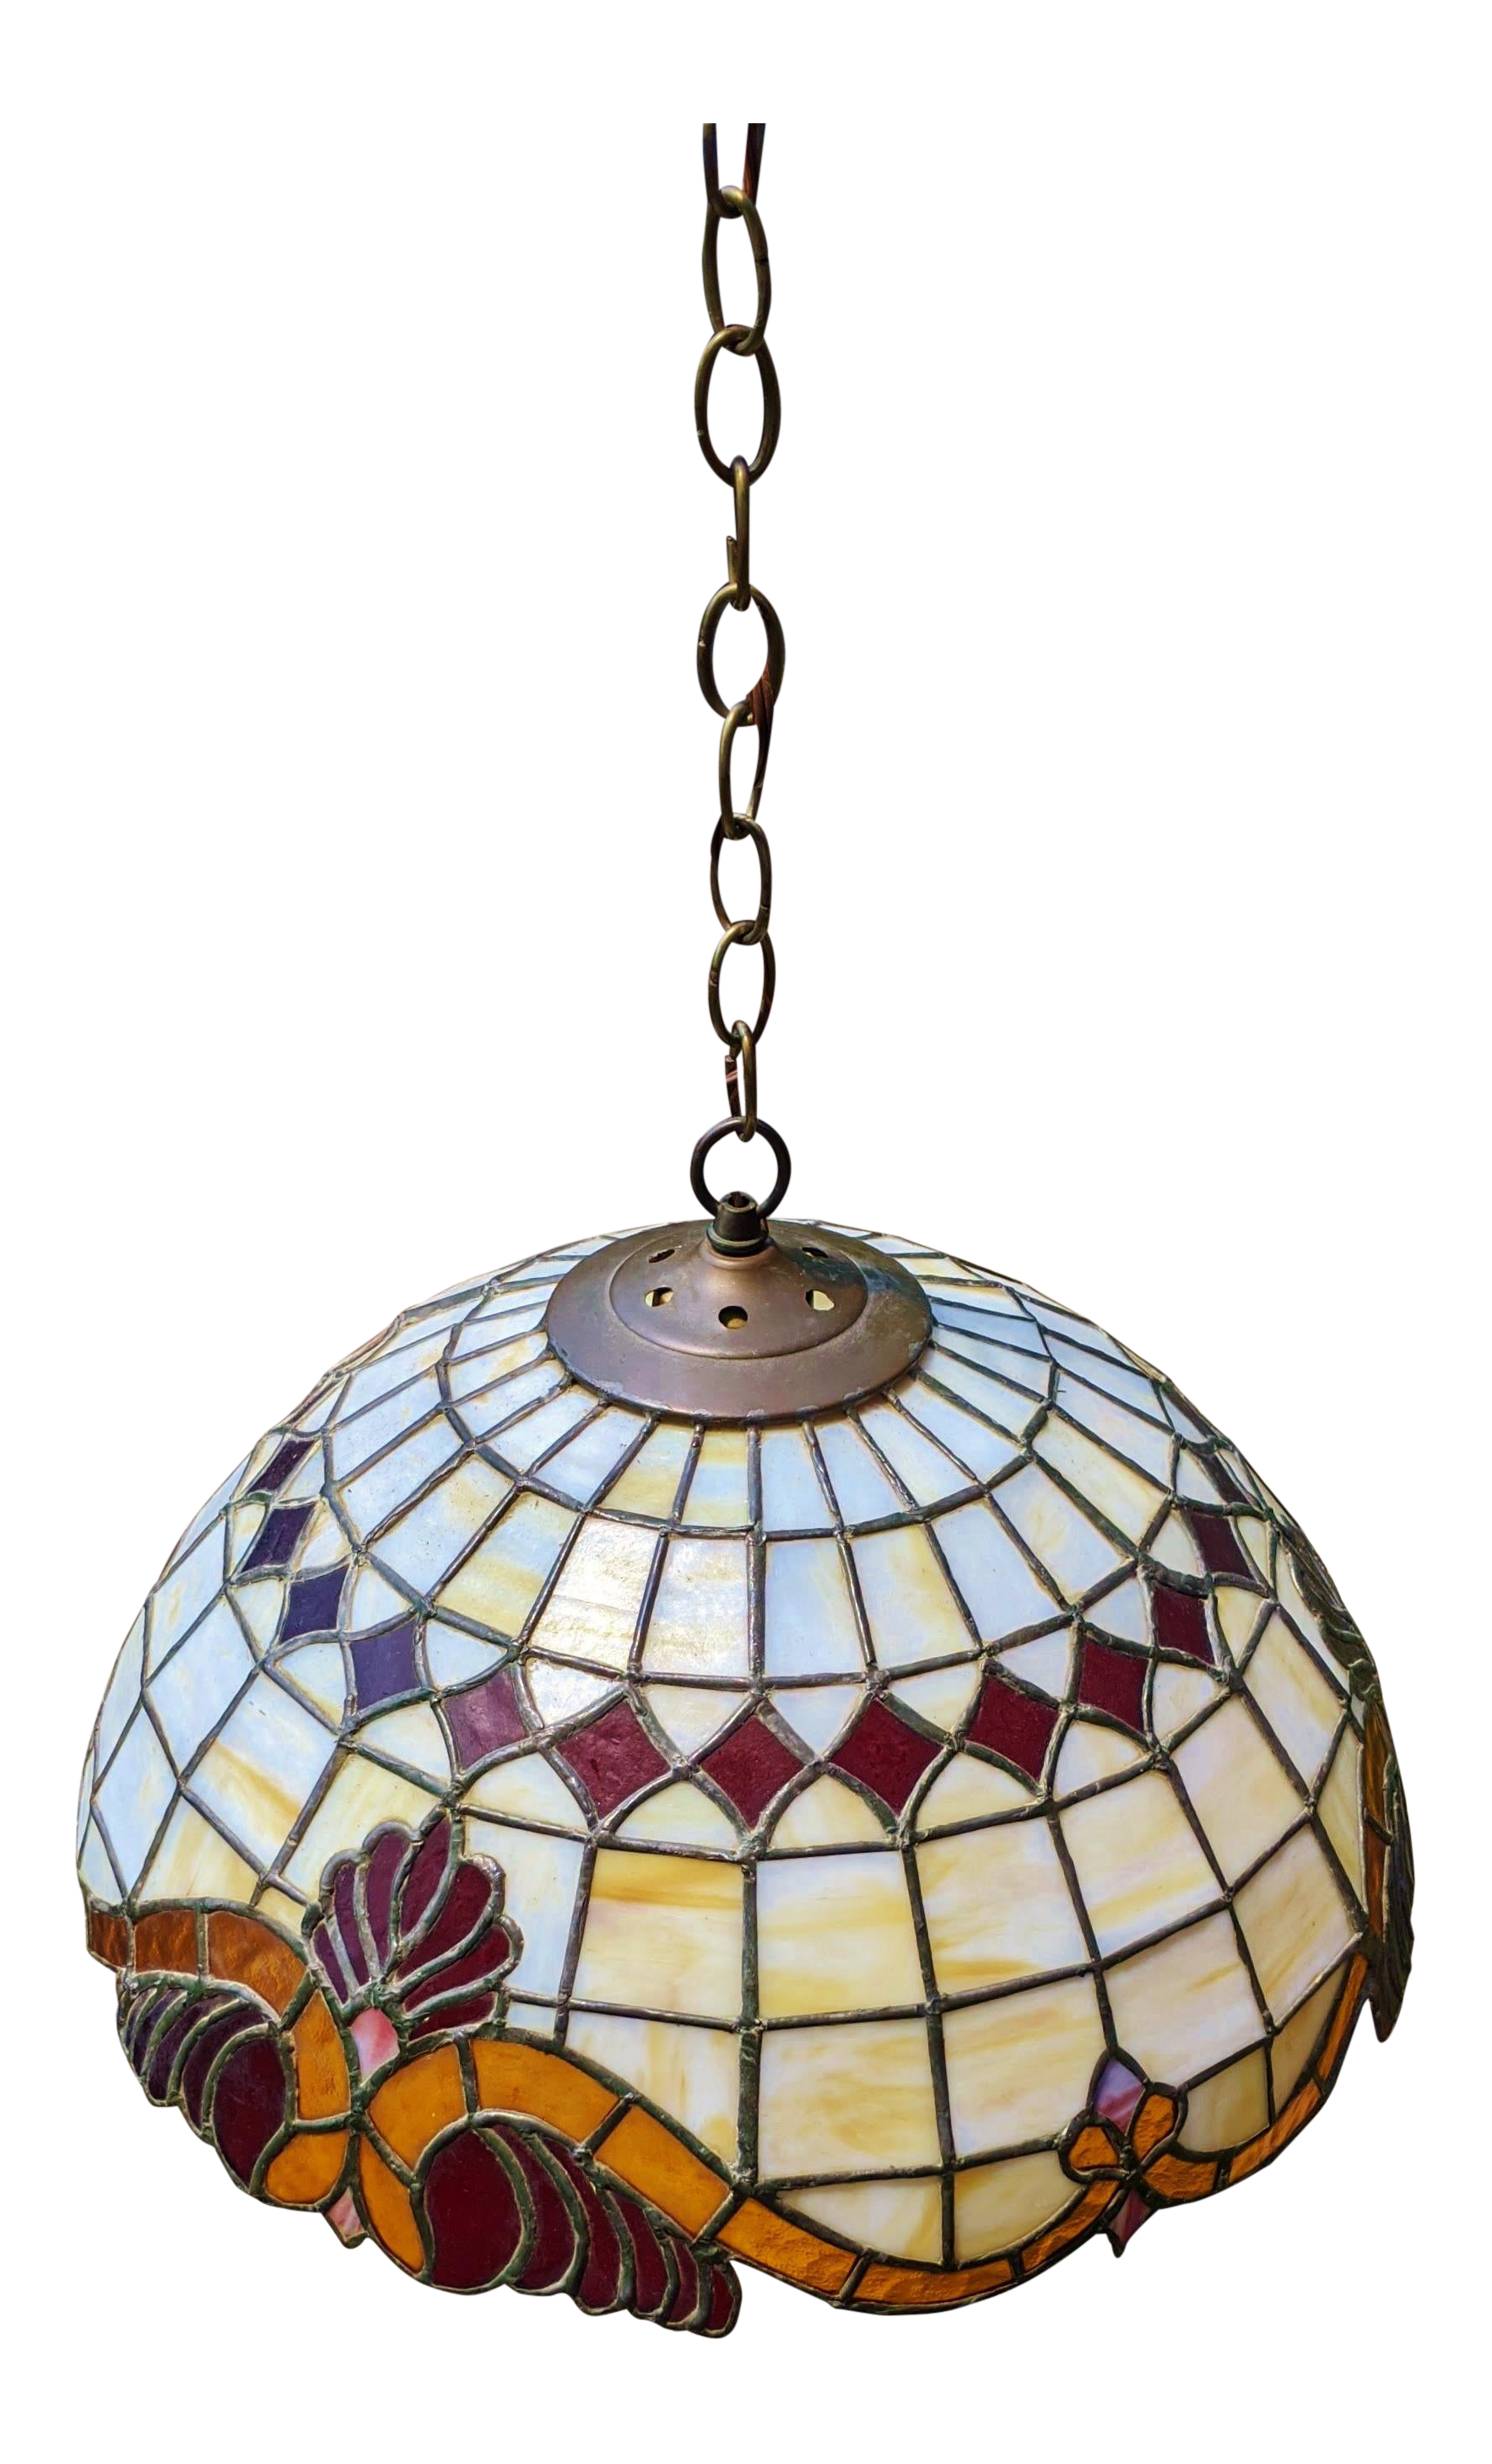 Large Vintage Tiffany Style Stained Glass Ceiling Pendant Light Fixture Chairish